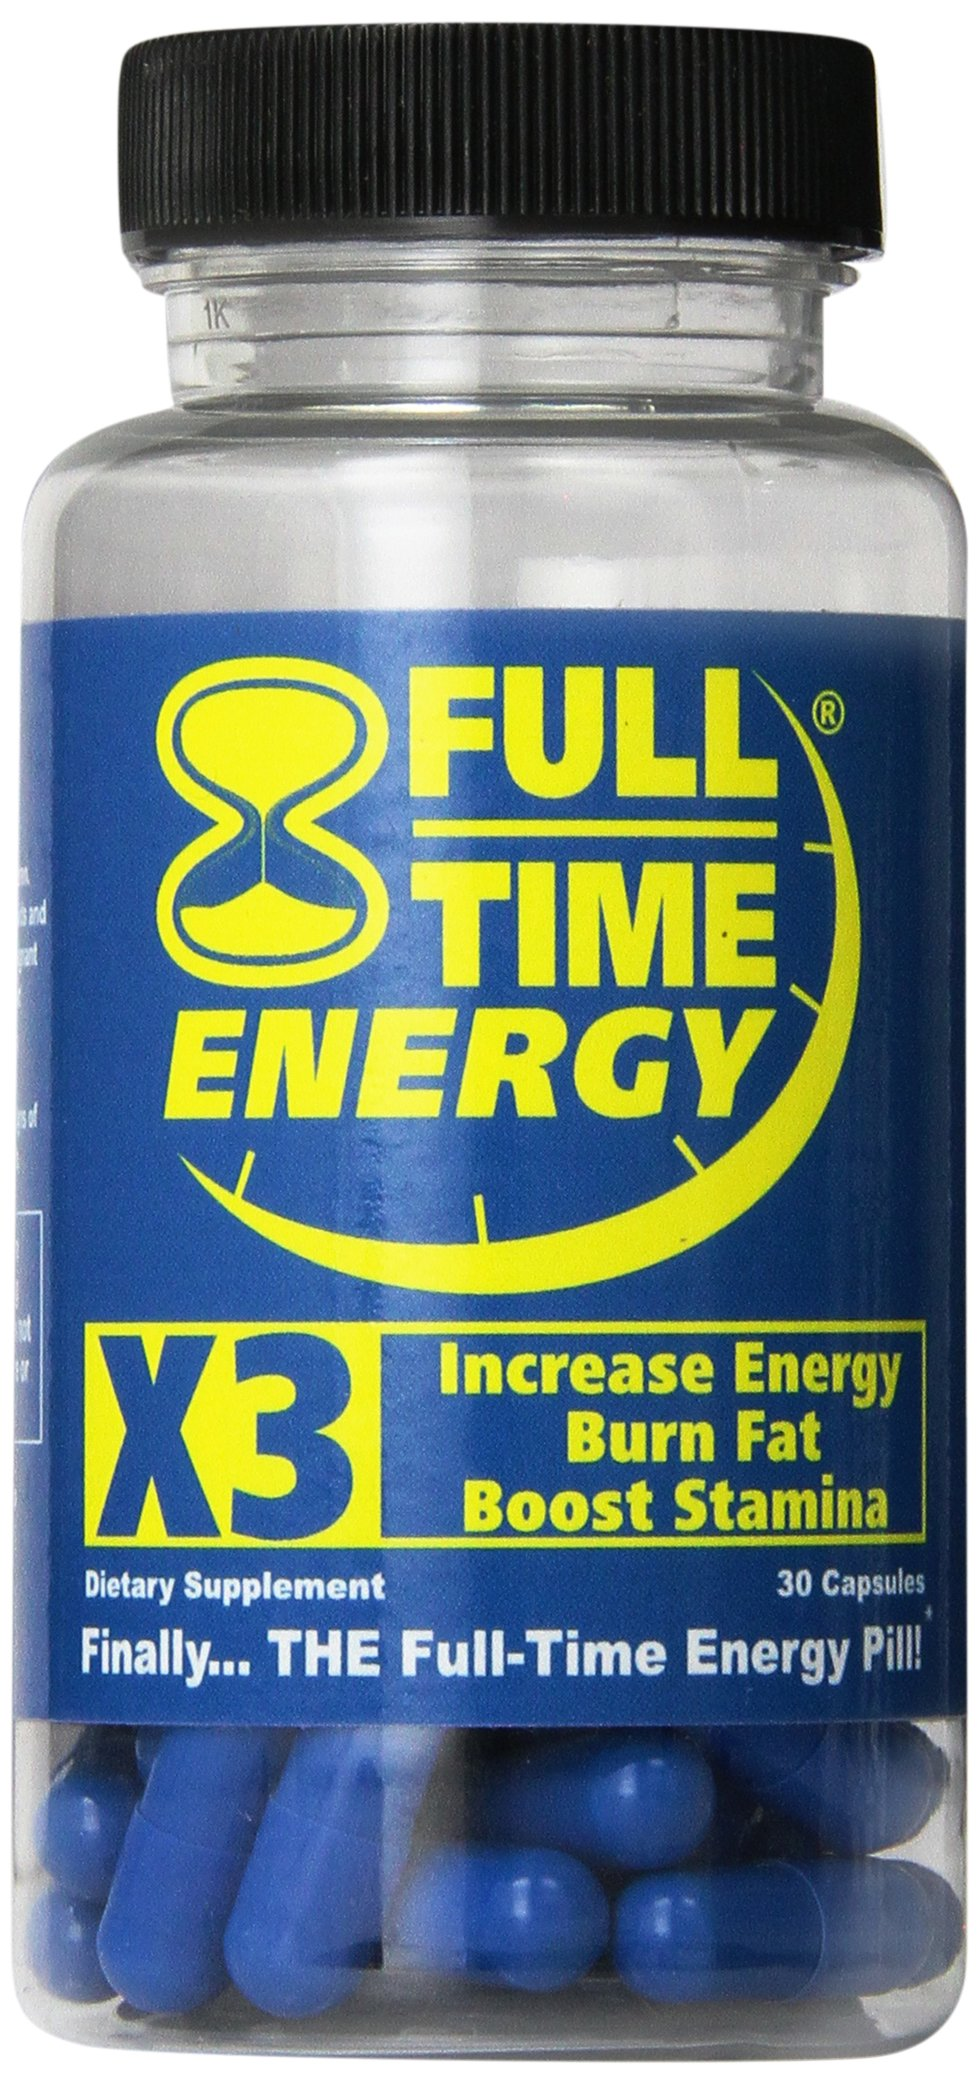 Amazon.com: Full-Time Energy Pills - Fat Burners - Best